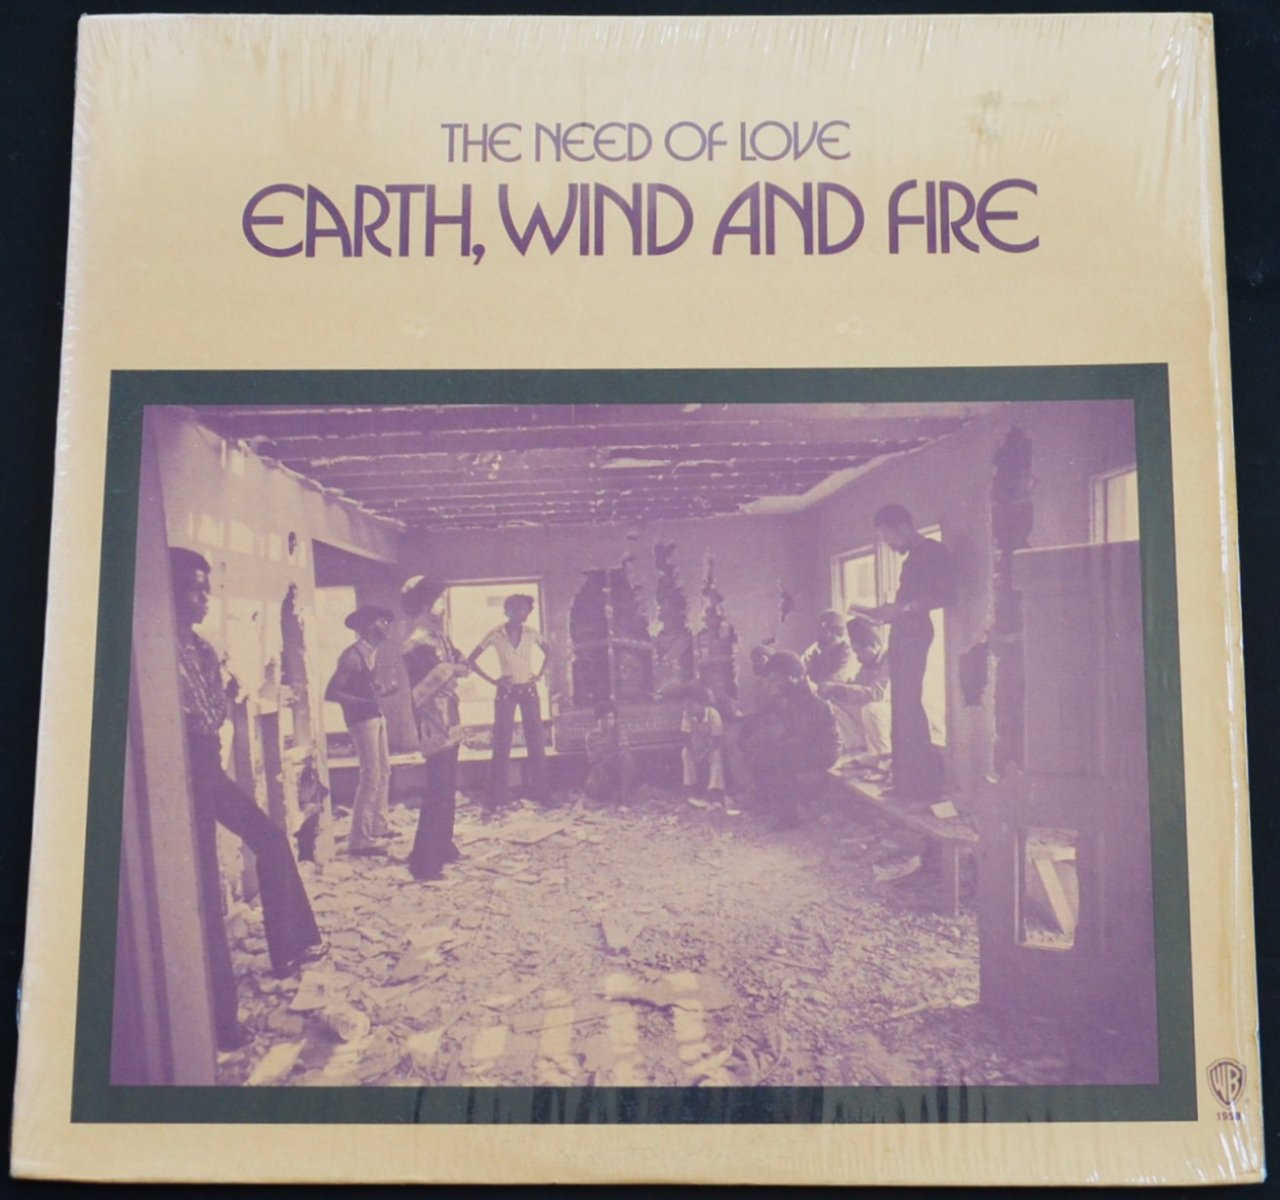 EARTH, WIND AND FIRE / THE NEED OF LOVE (LP)